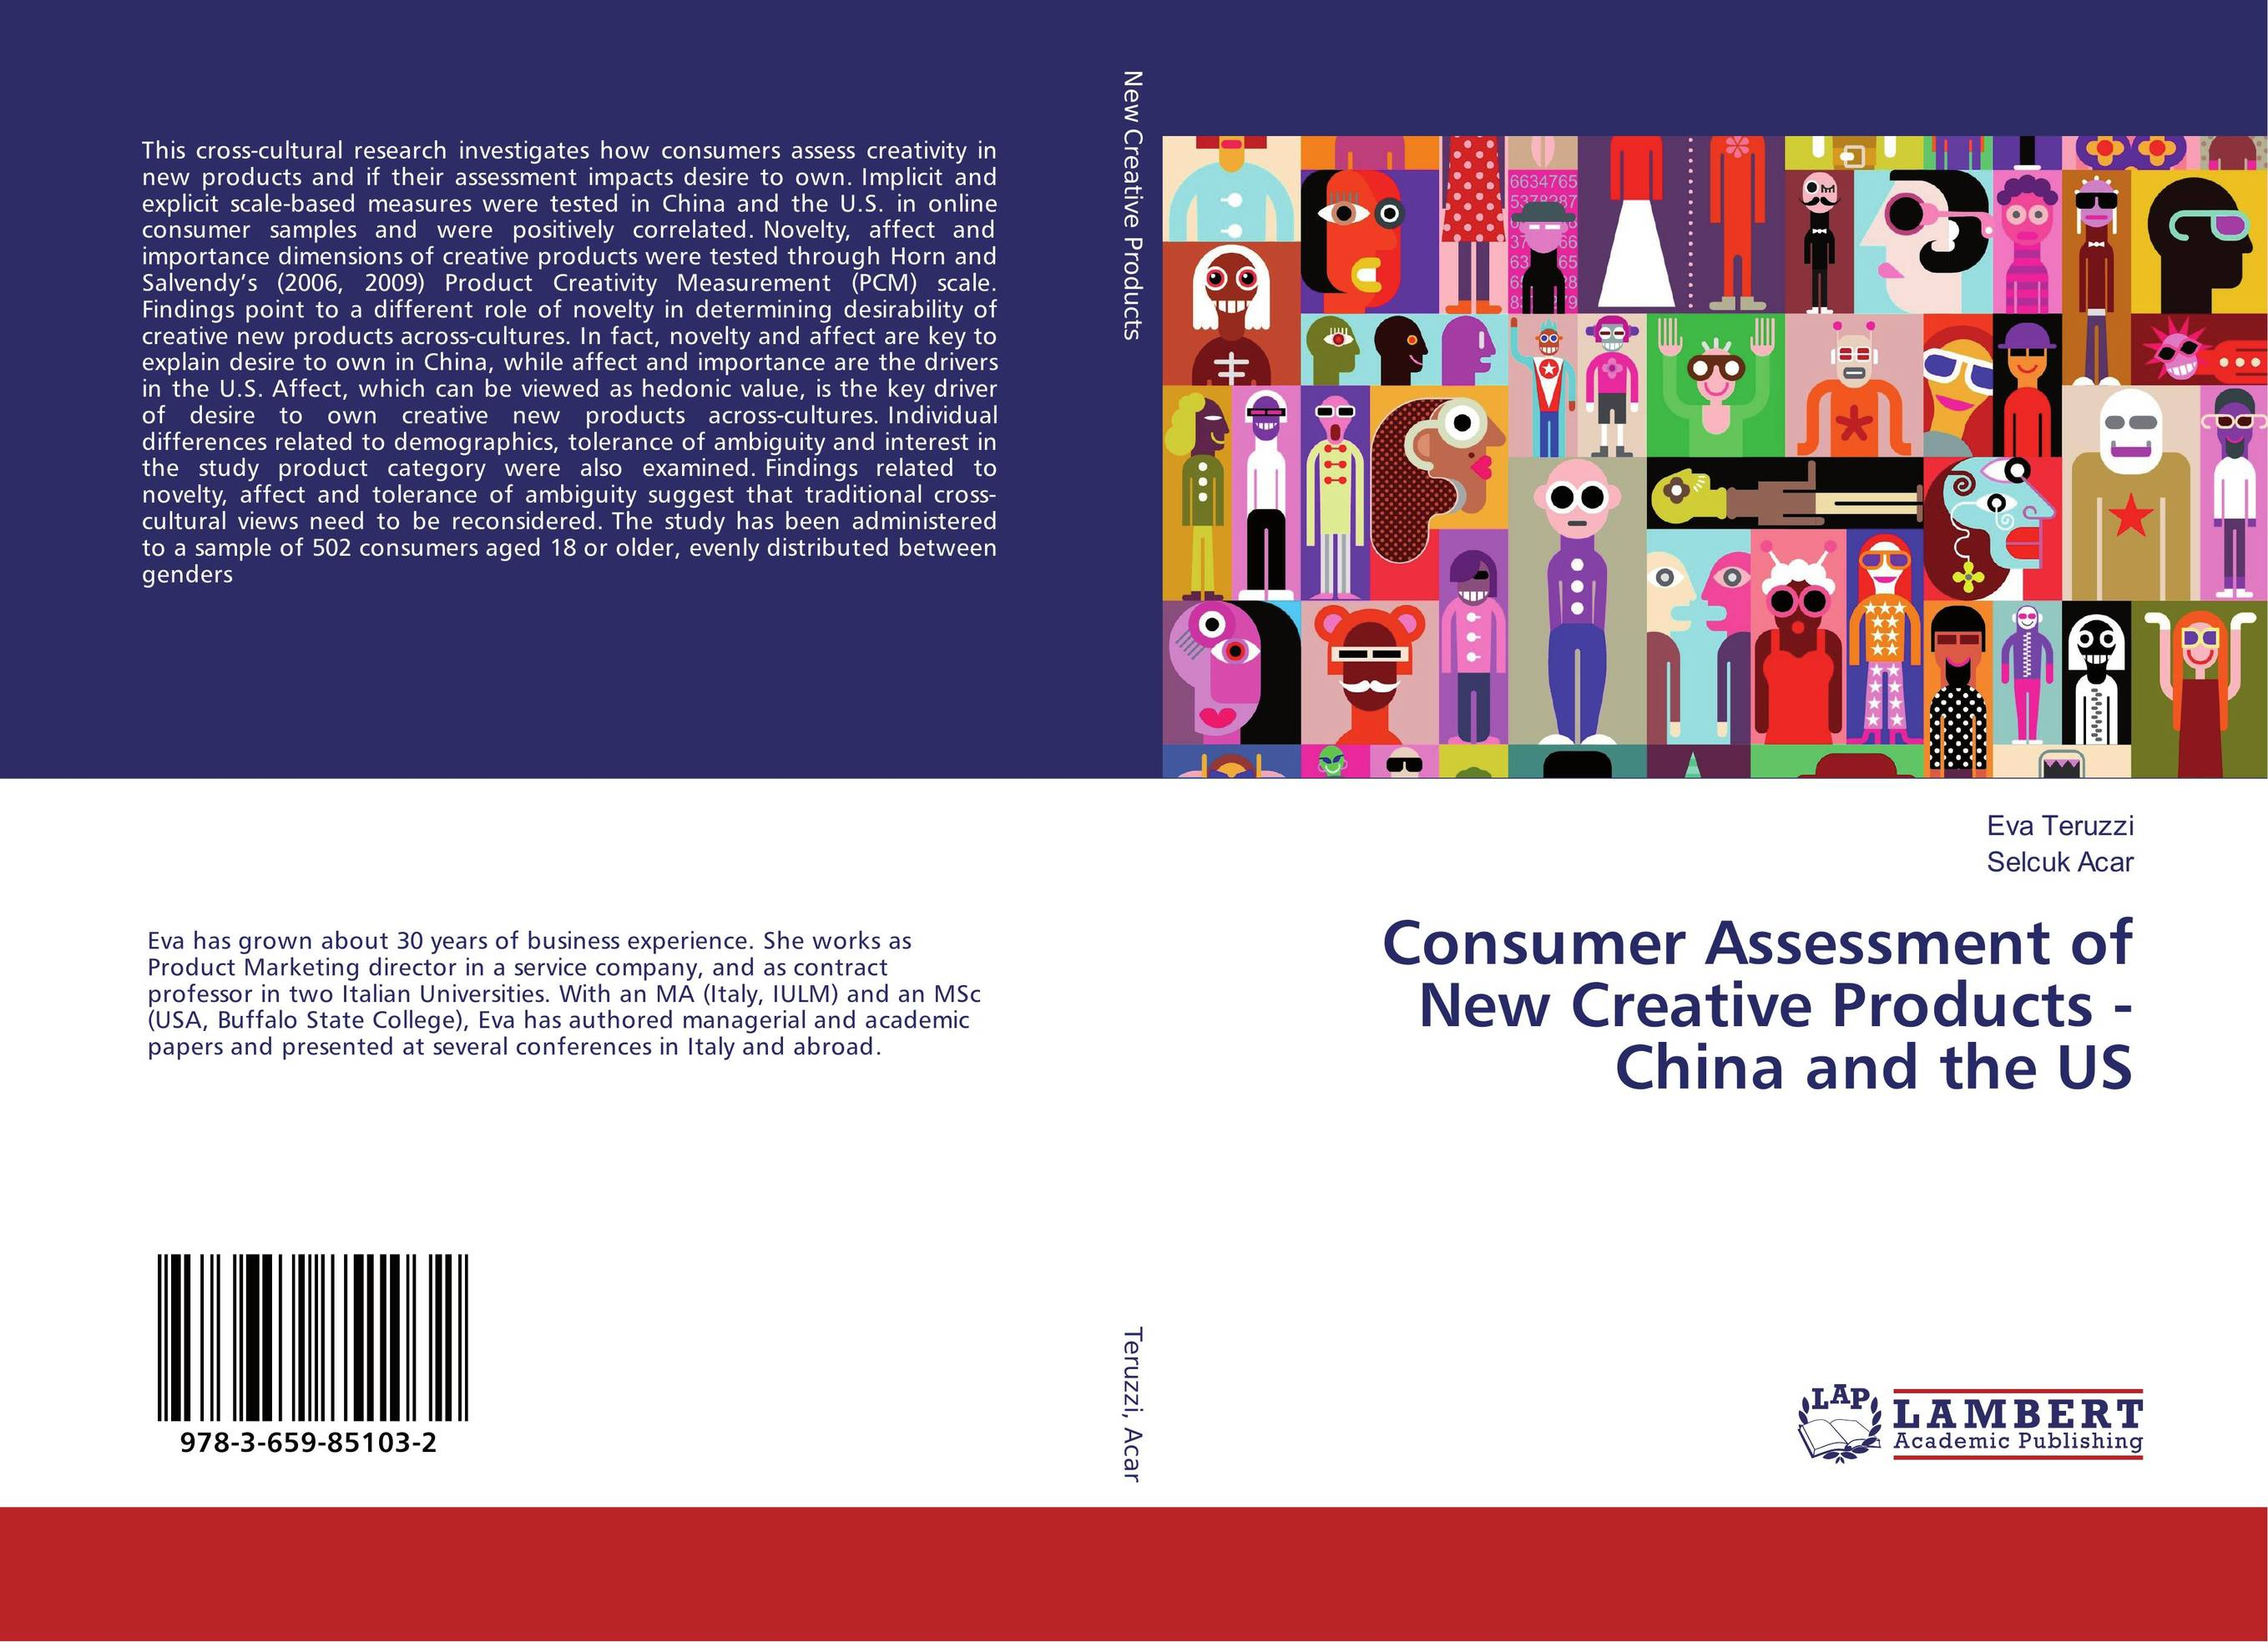 Consumer Assessment of New Creative Products - China and the US